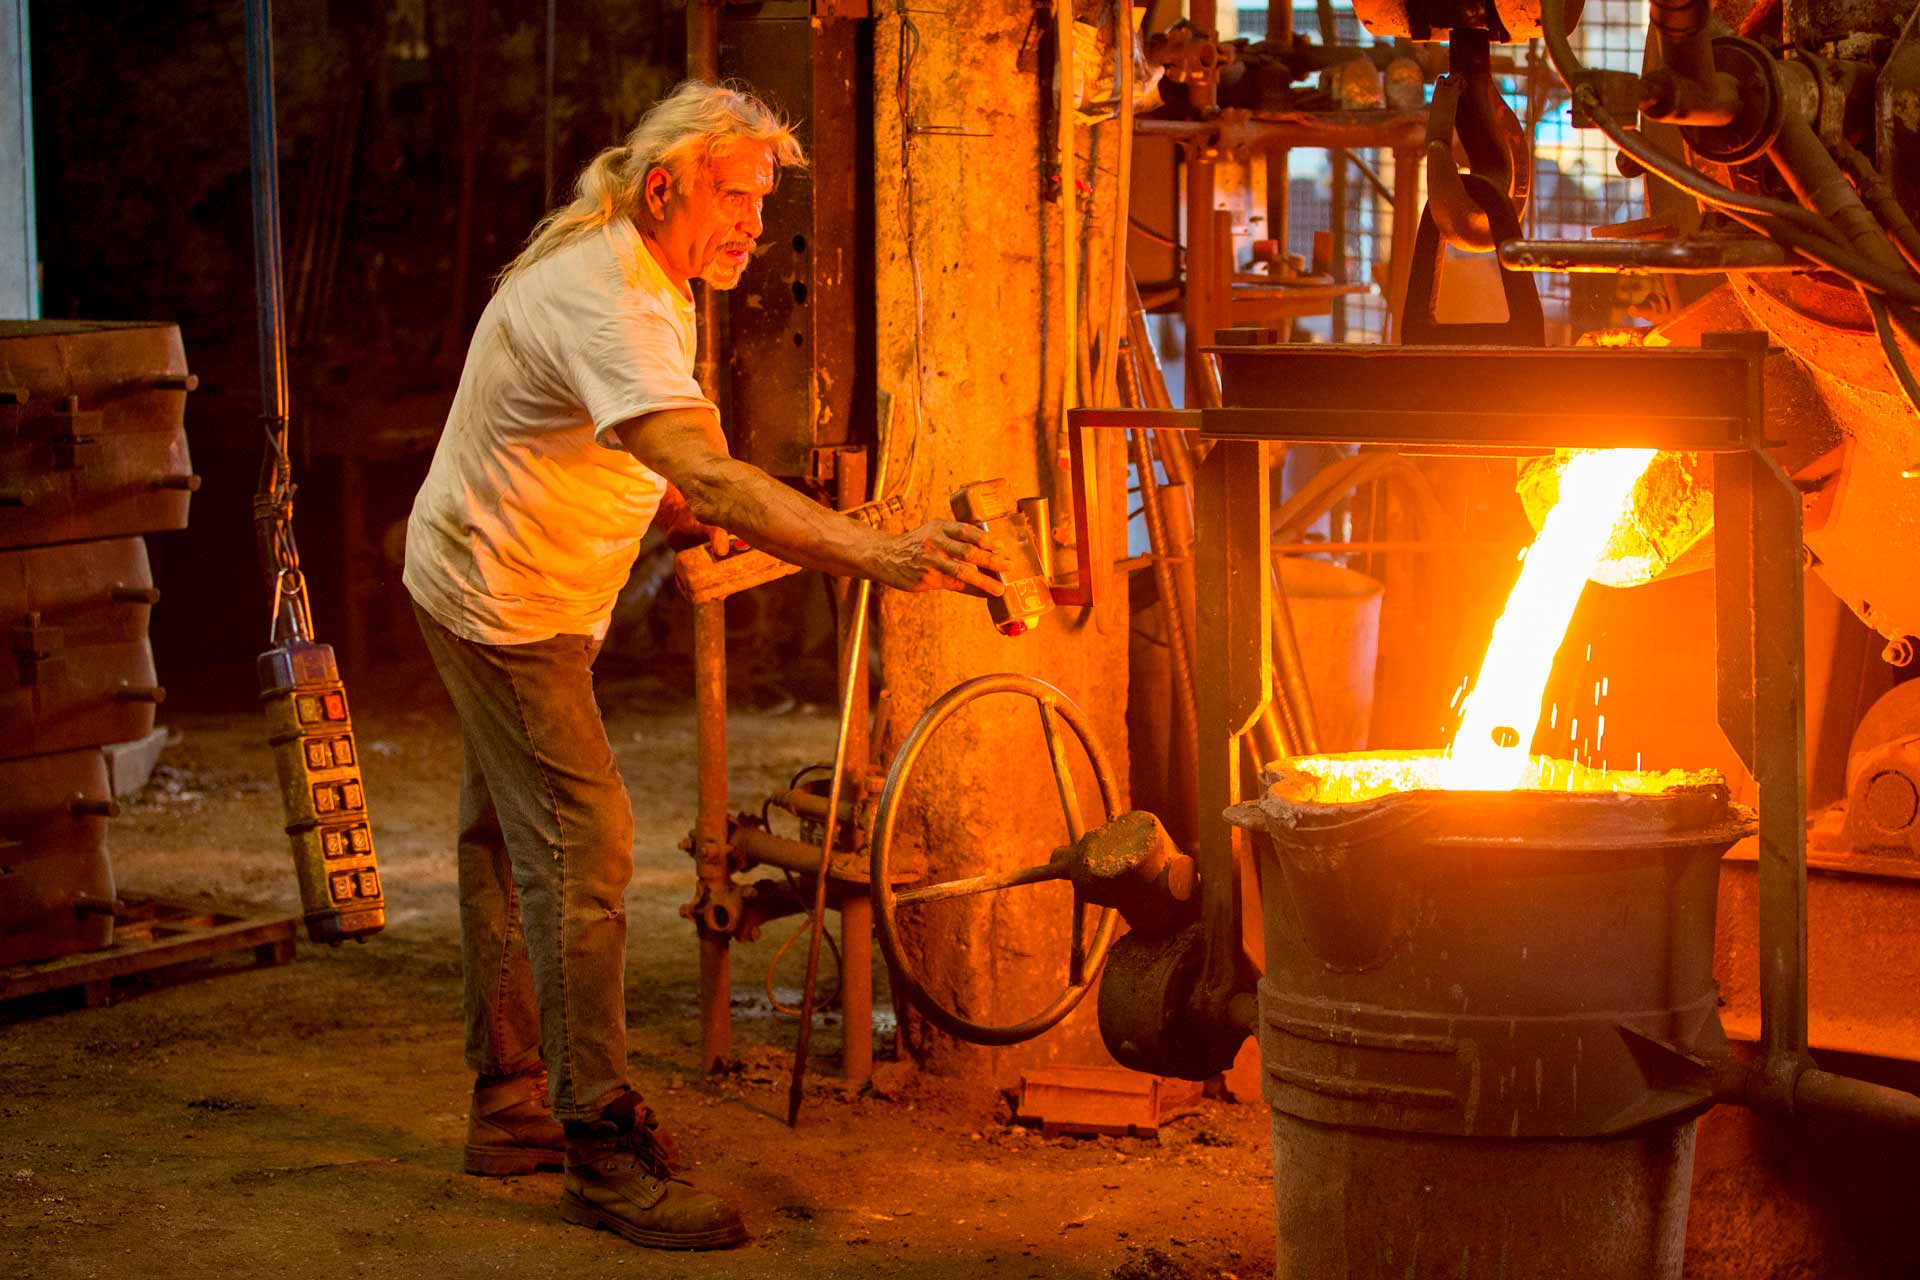 Cast iron casting is a manufacturing process that allows, through high temperatures, to produce and give a precise shape to objects made with this alloy.